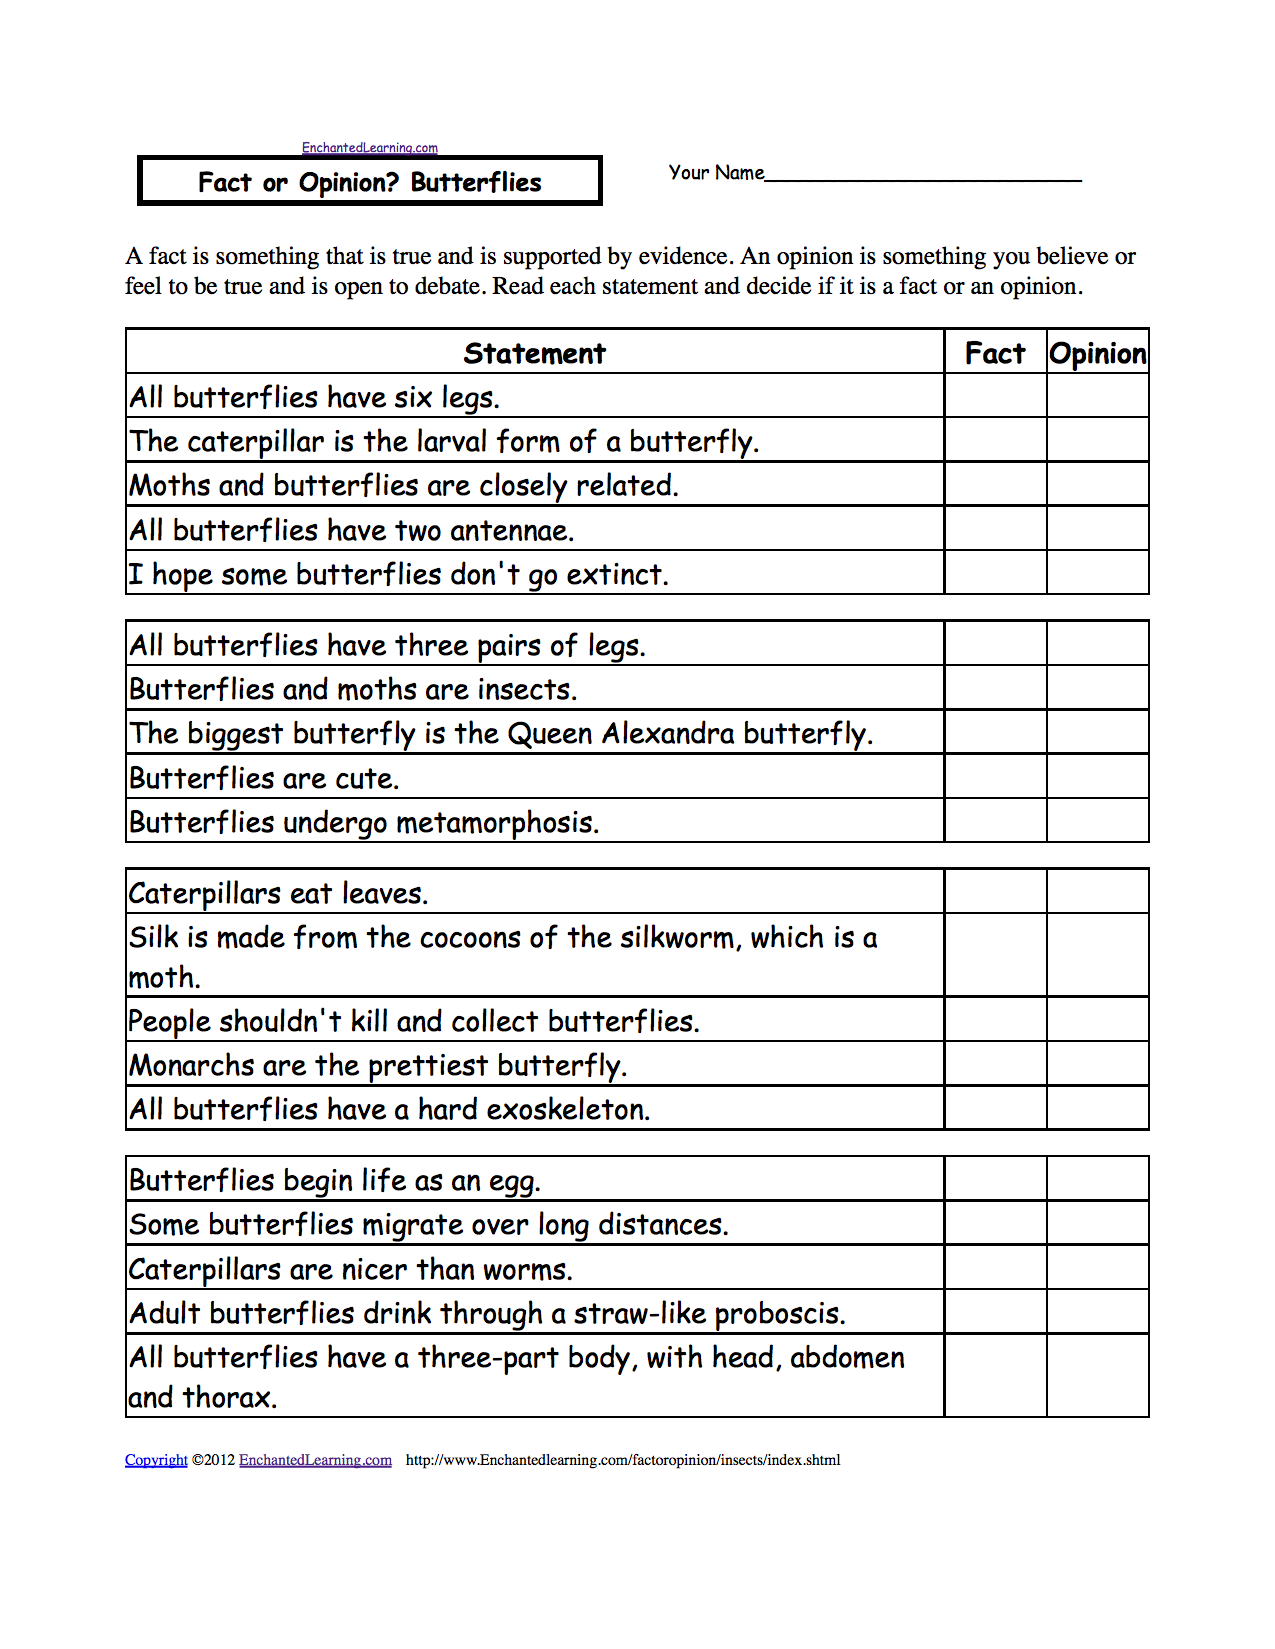 fact or opinion checkmark worksheets to print com